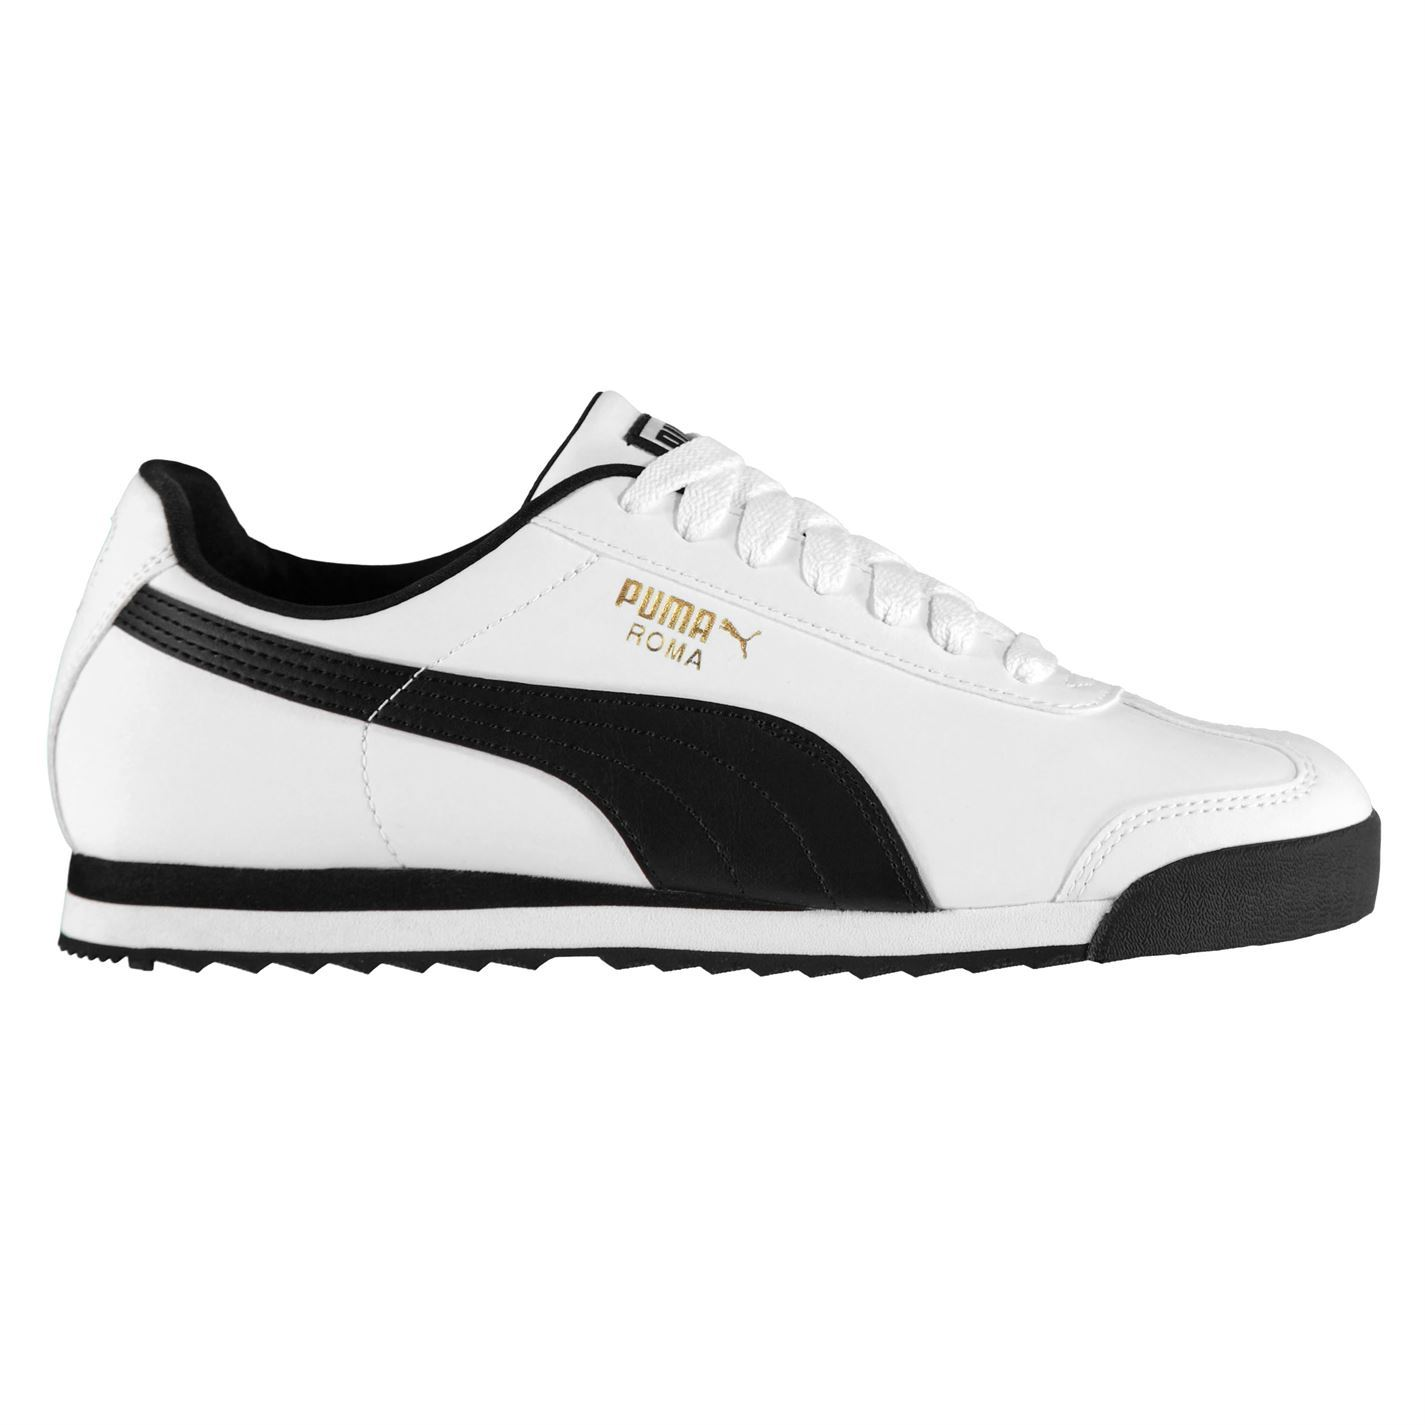 Puma-Roma-Basic-Trainers-Mens-Athleisure-Footwear-Shoes-Sneakers thumbnail 29